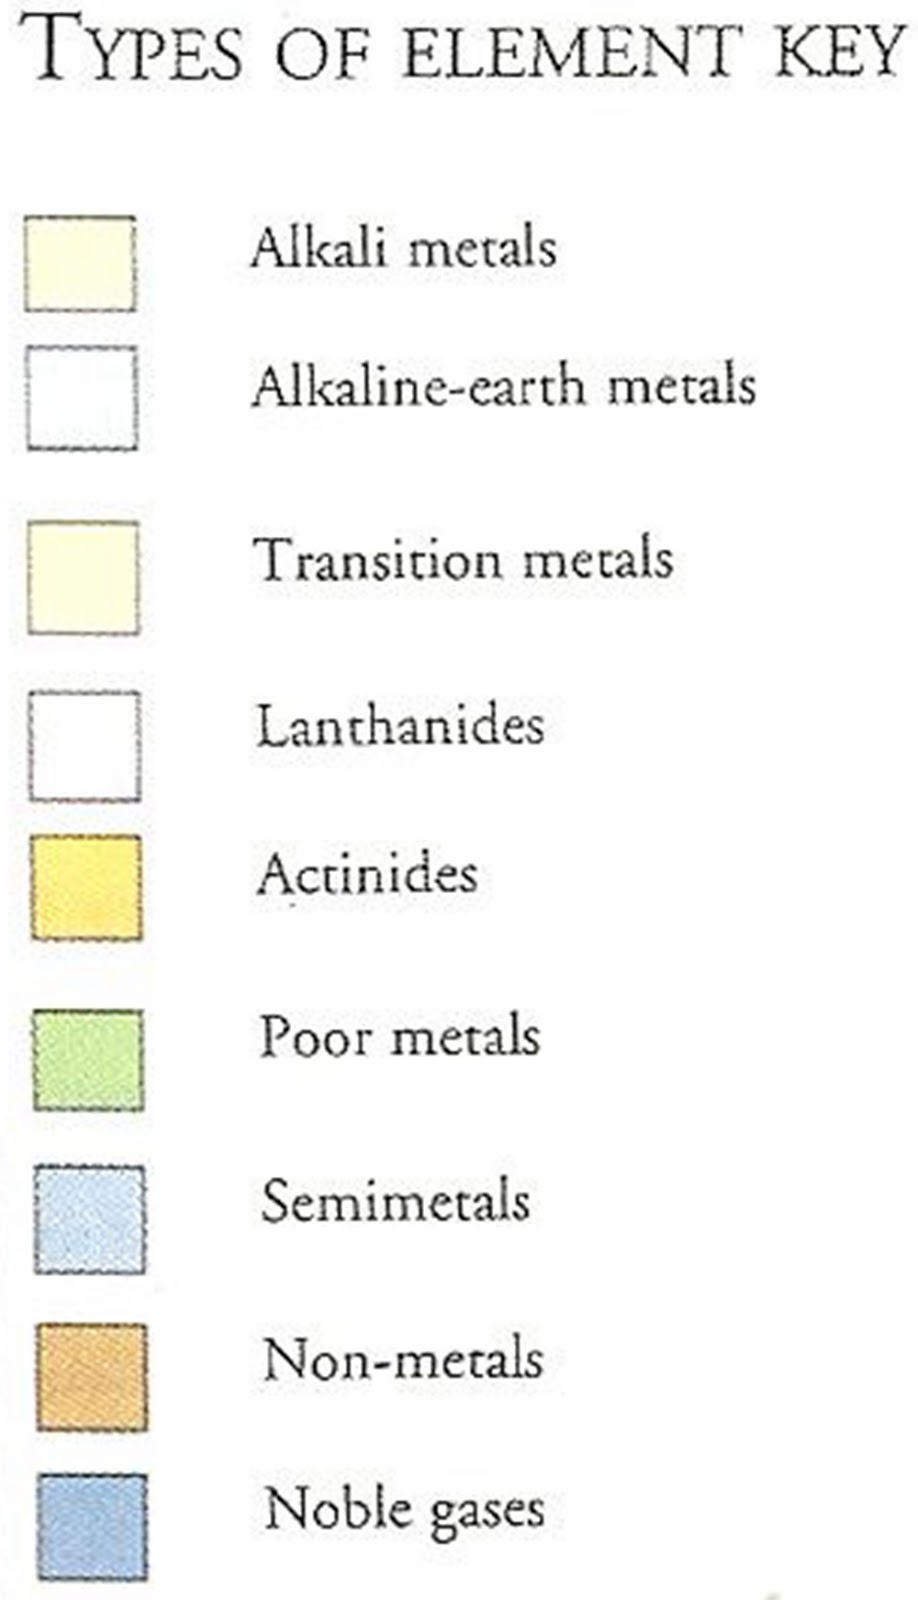 Manash subhaditya edusoft periodic table pictorial journey of periodic table pictorial journey of metals part 2 urtaz Choice Image